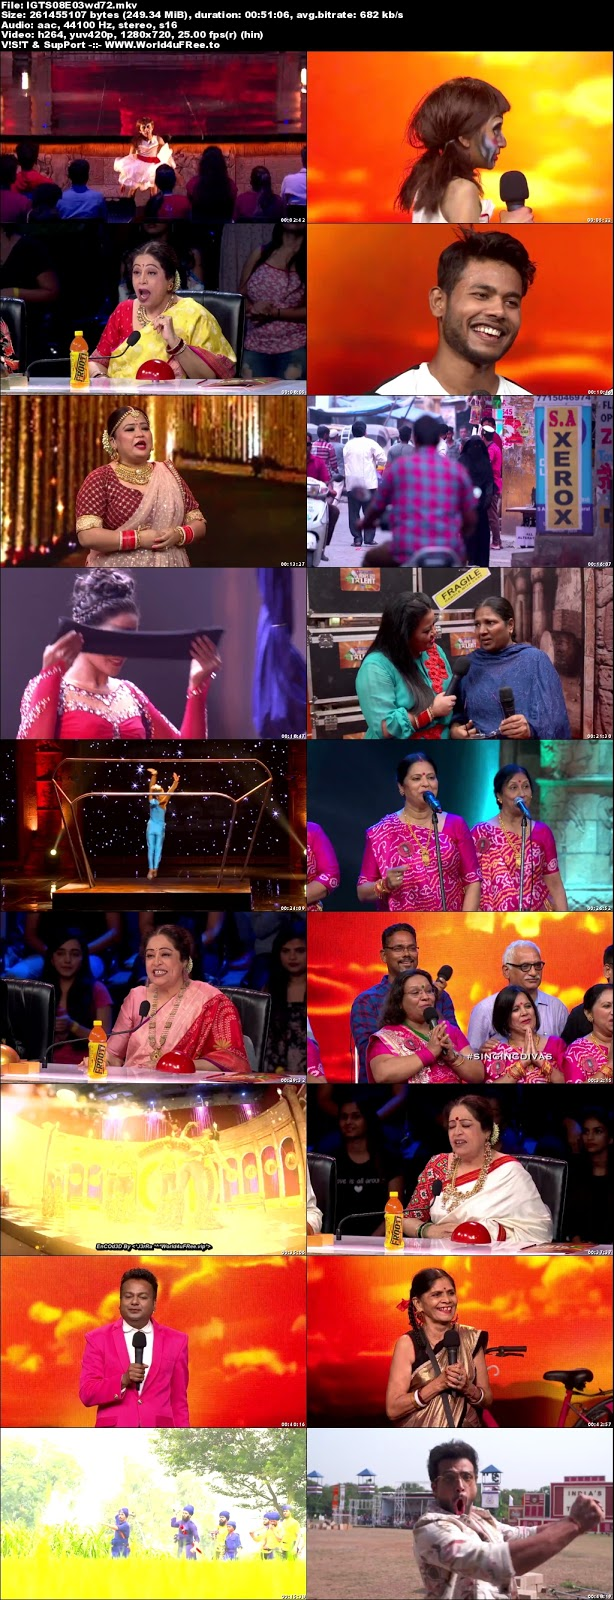 India's Got Talent S08 Episode 03 720p WEBRip 250mb x264 world4ufree.fun tv show India's Got Talent  Season 8 Star Plus tv show HD 720p free download or watch online at world4ufree.fun